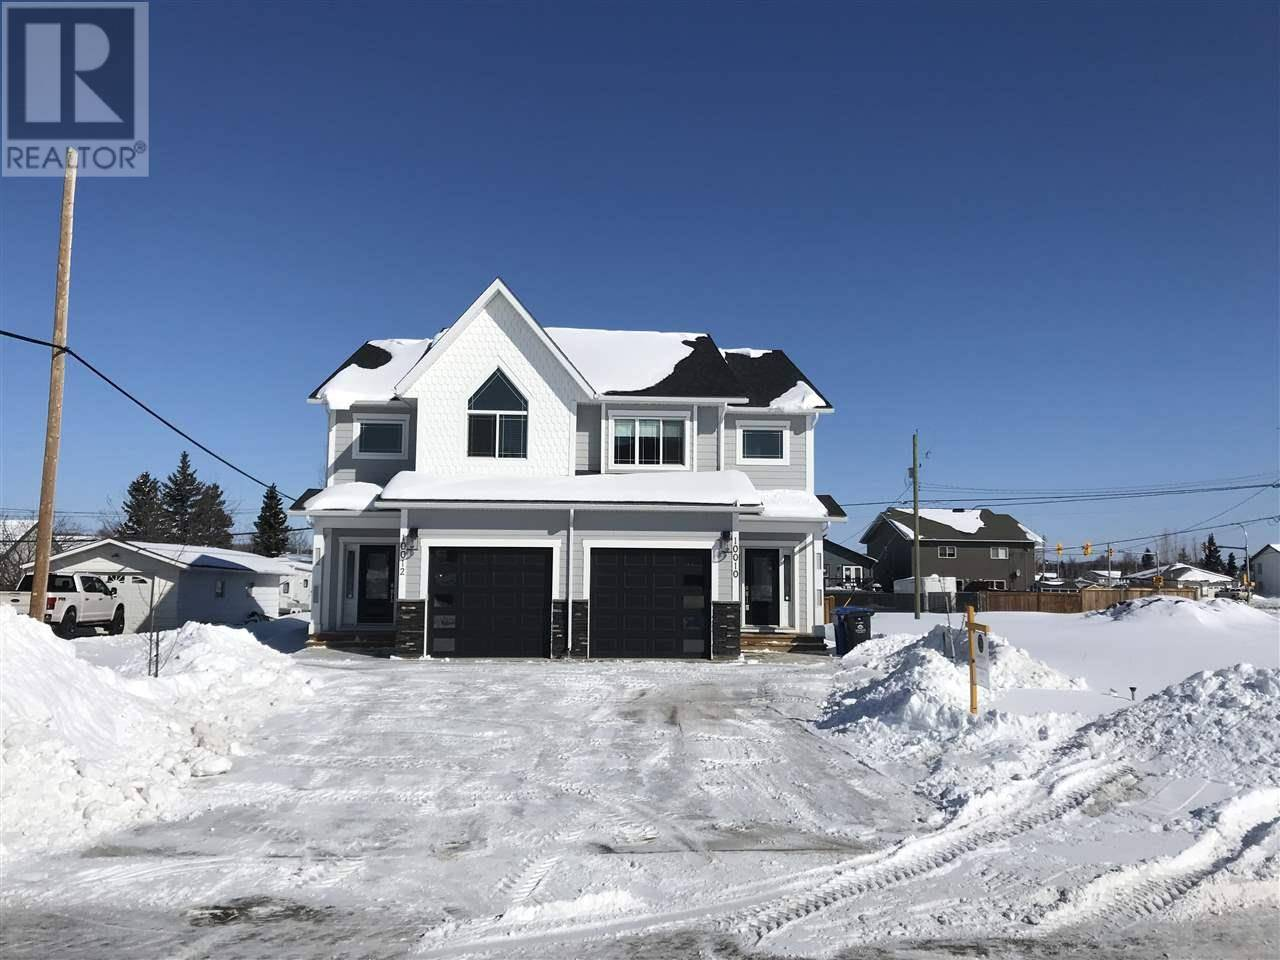 Townhouse for sale at 10010 111 Ave Fort St. John British Columbia - MLS: R2443211